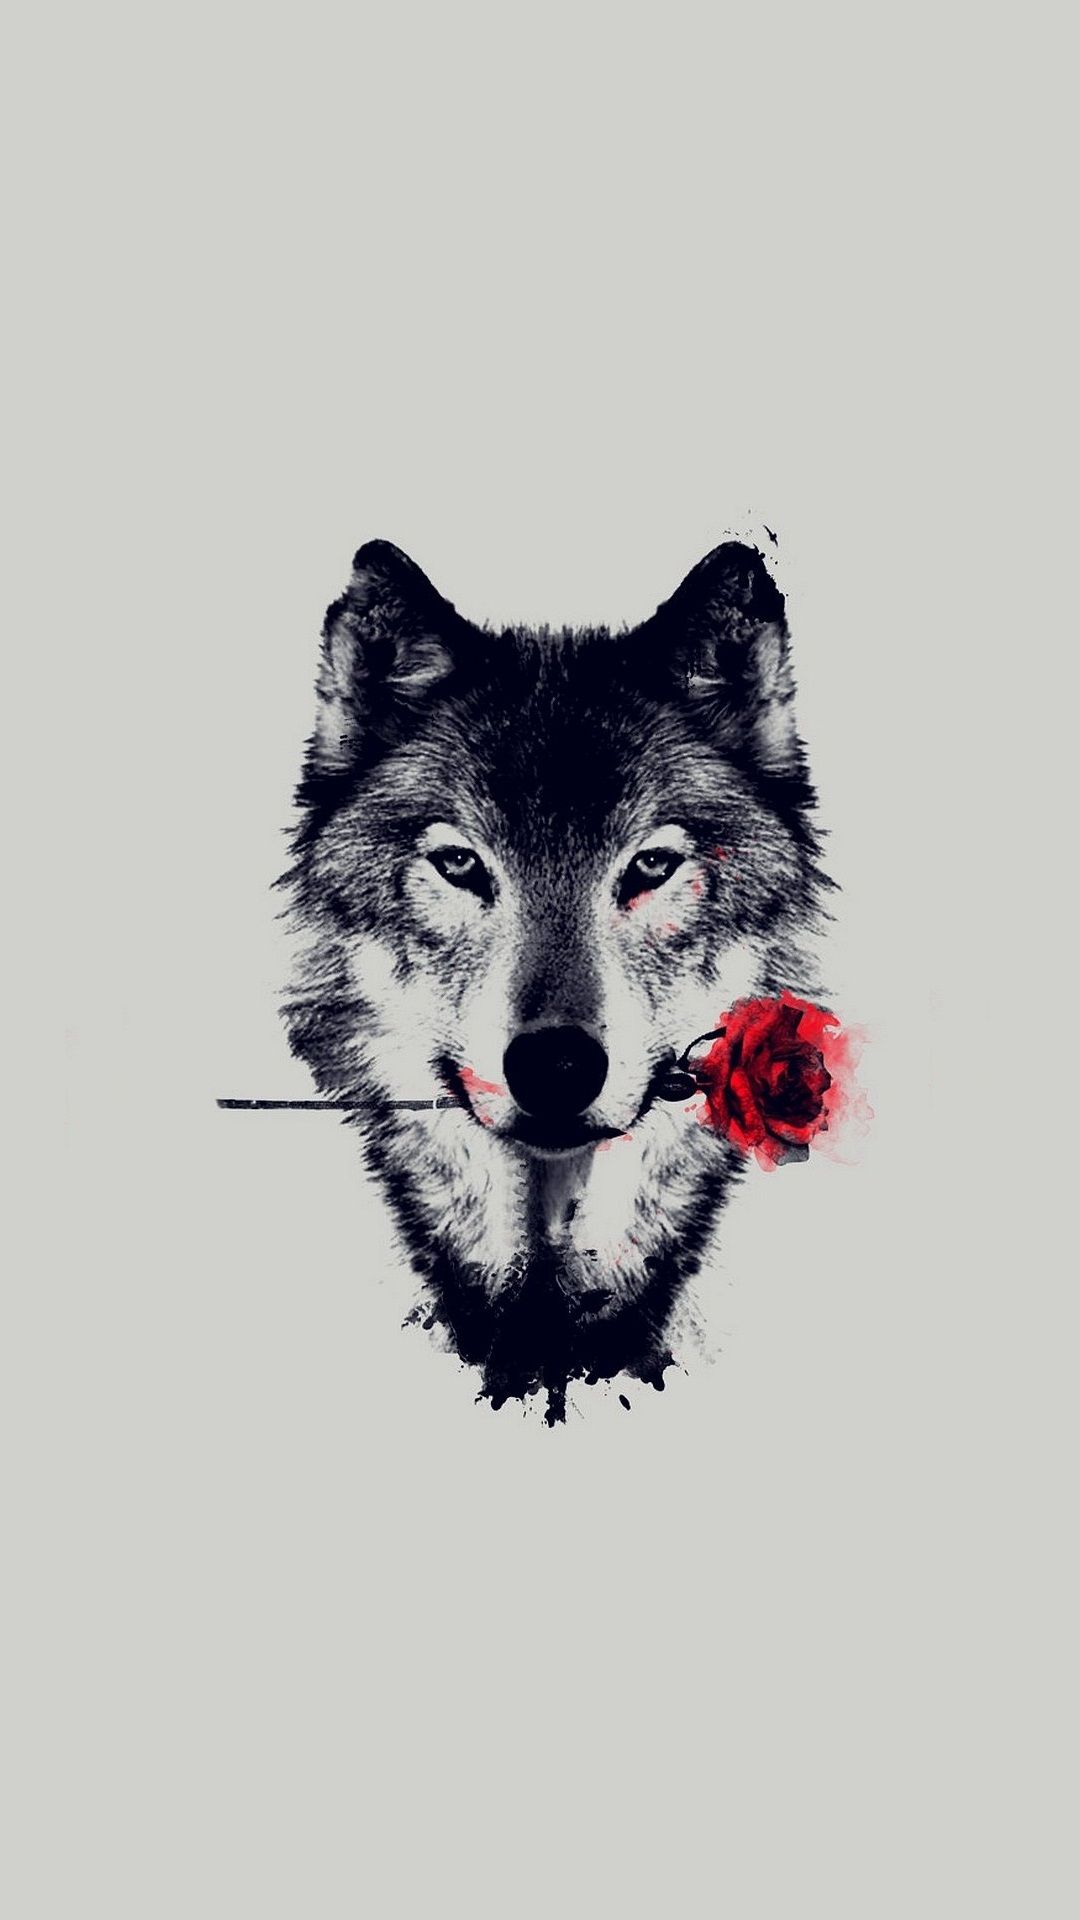 wolf iphone wallpaper wolf wallpaper iphone 2018 iphone 8538